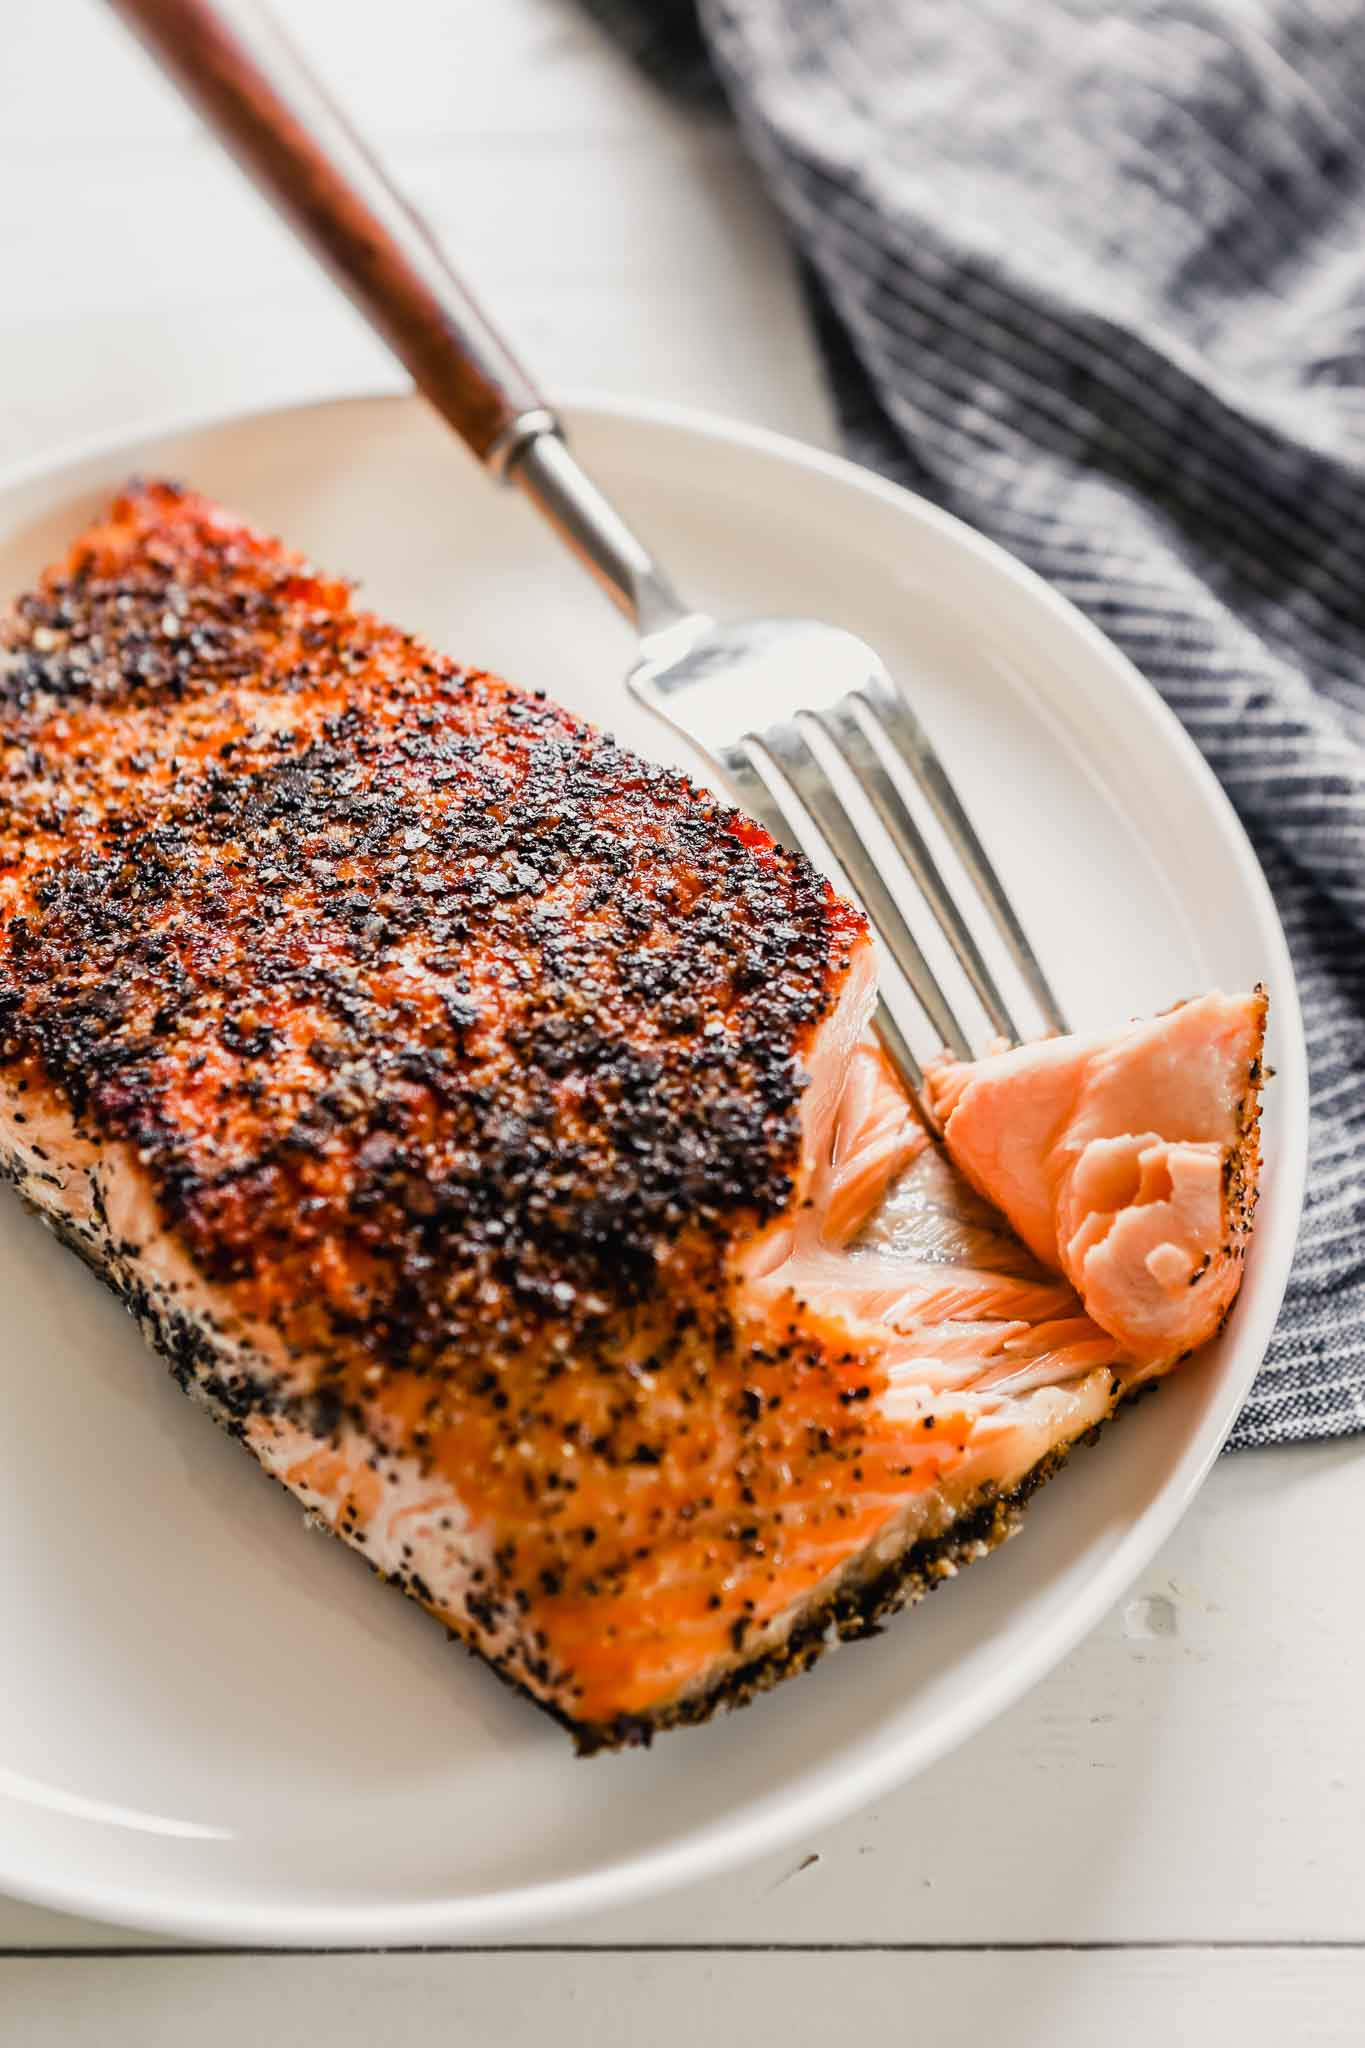 Close up photo of crispy pan seared salmon with skin set on a white plate with a fork taking a large chunk out of it